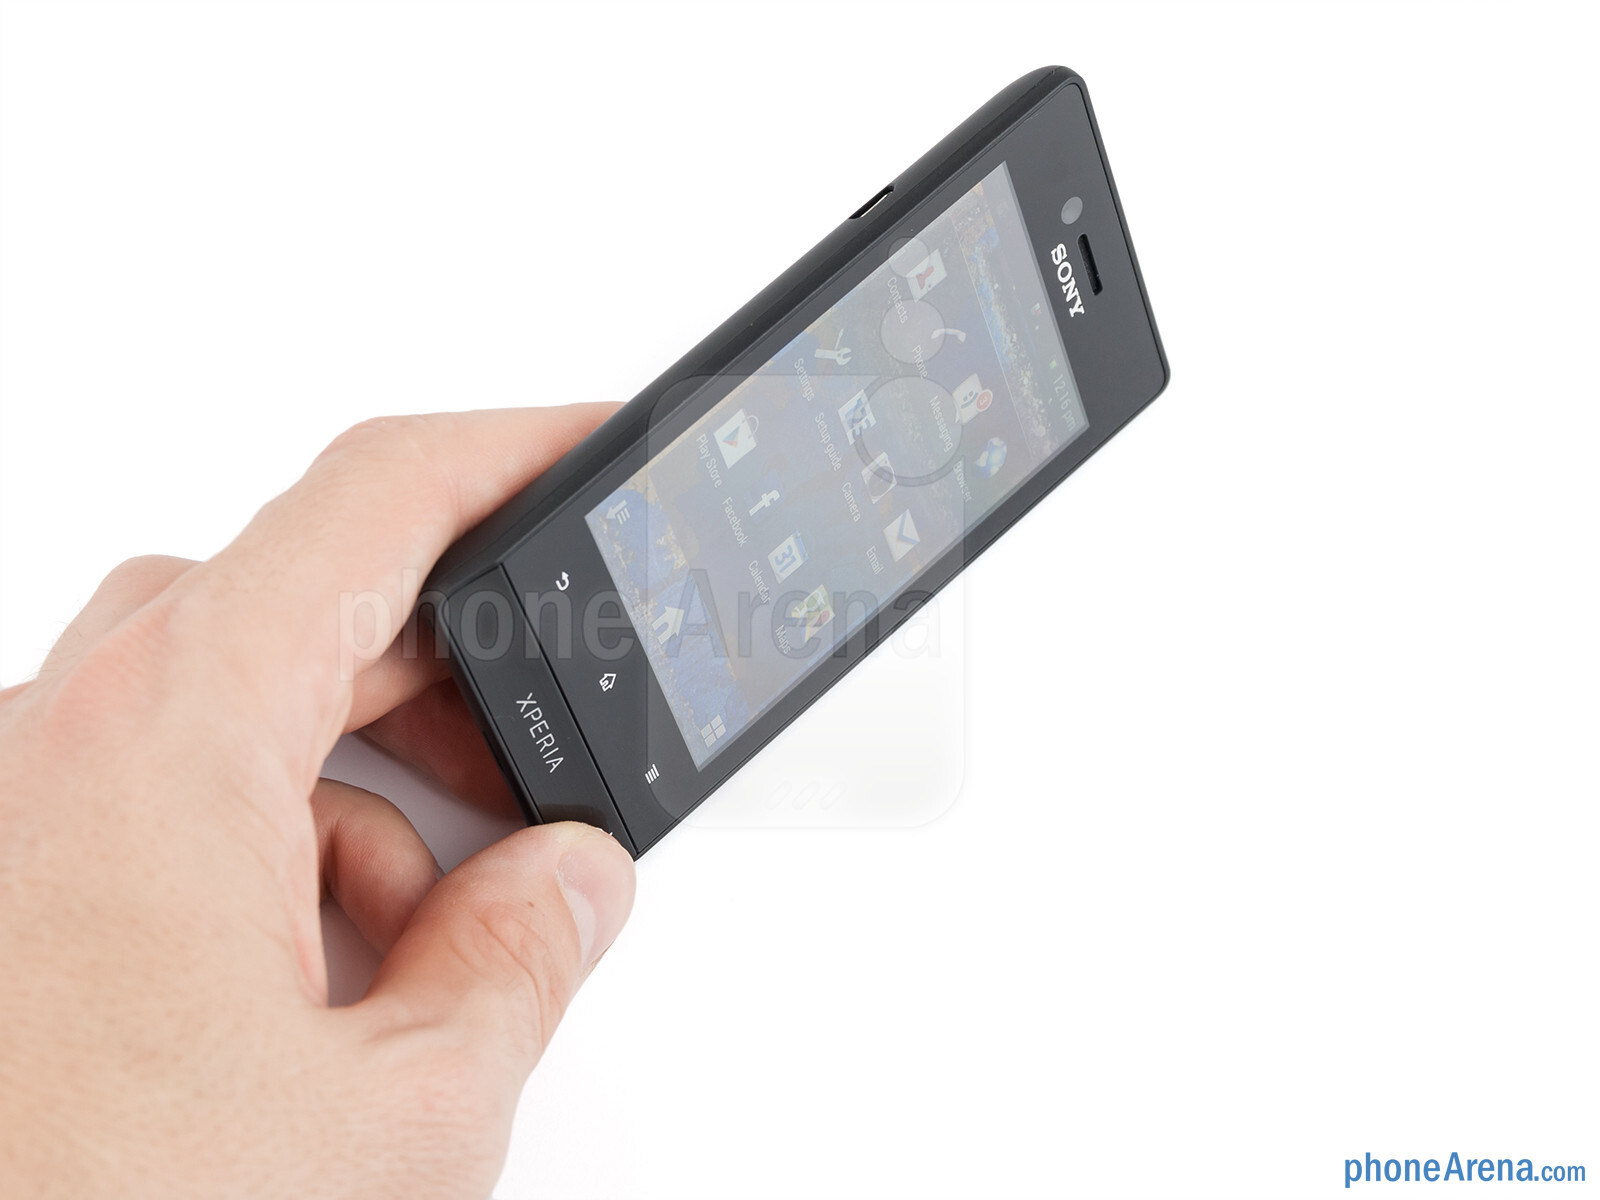 The Sony Xperia miro feels well built - Sony Xperia miro Review